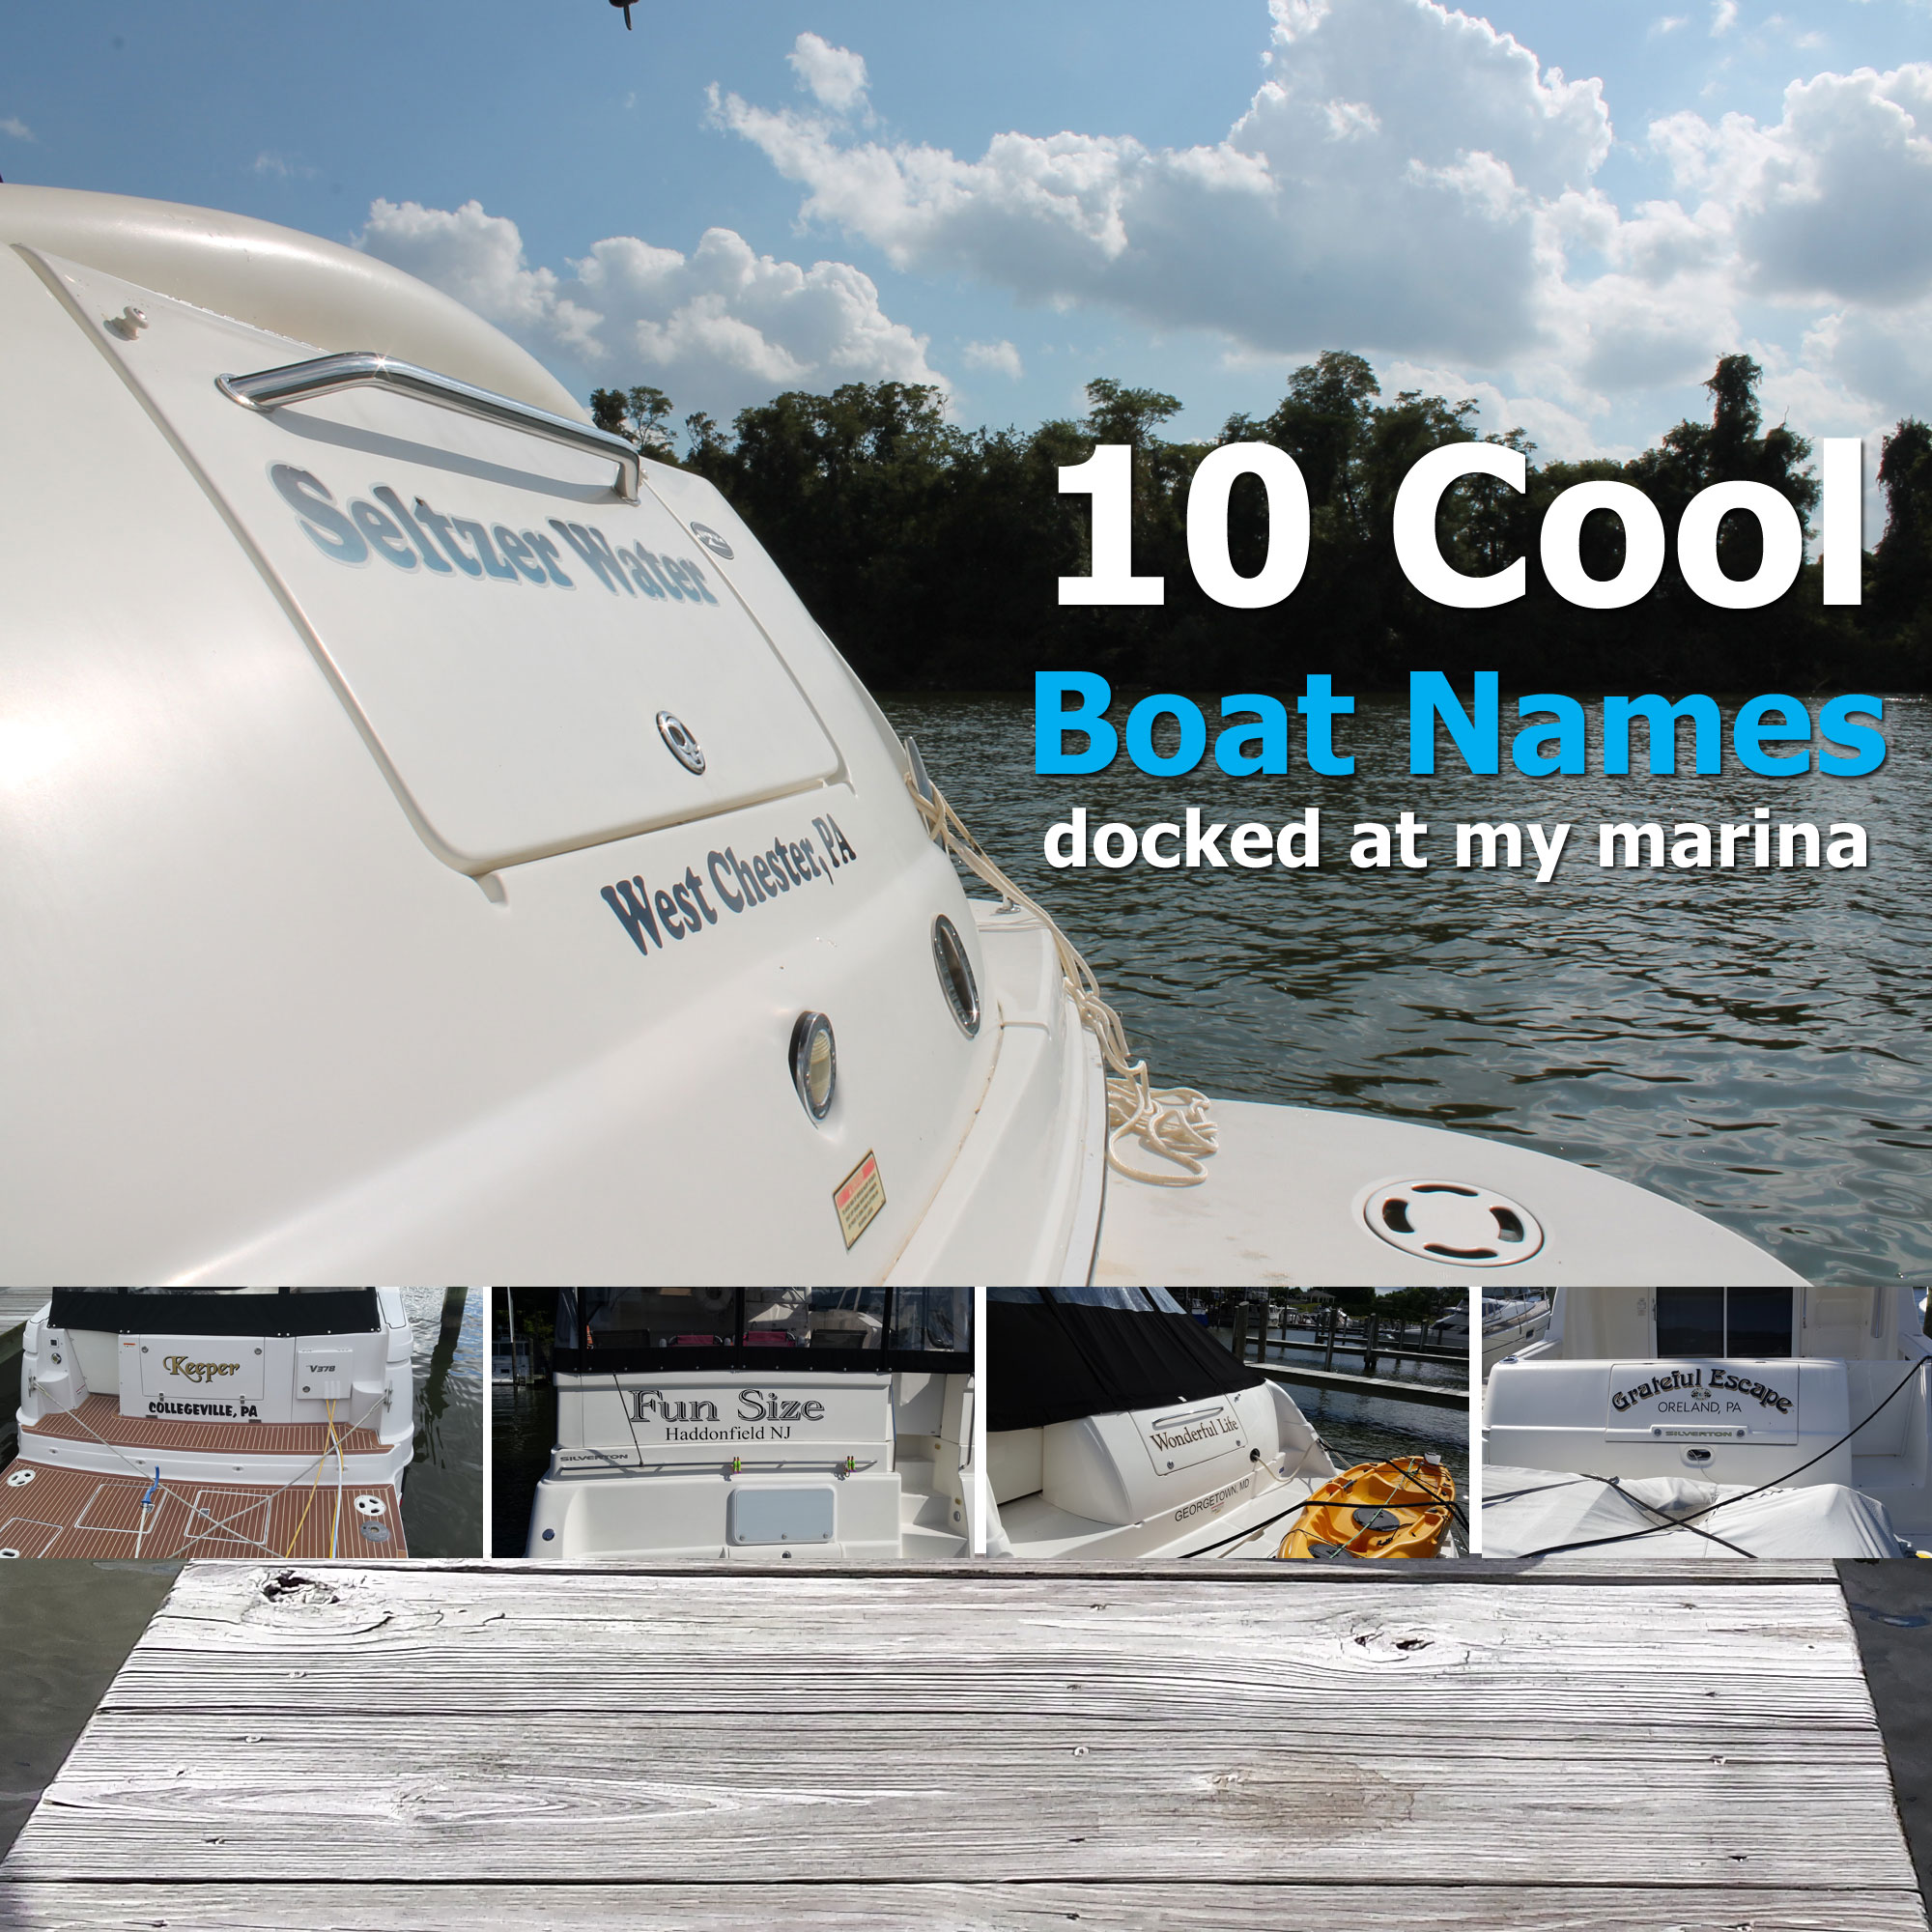 10 Cool Boat Names Docked at My Marina | My Boat Life